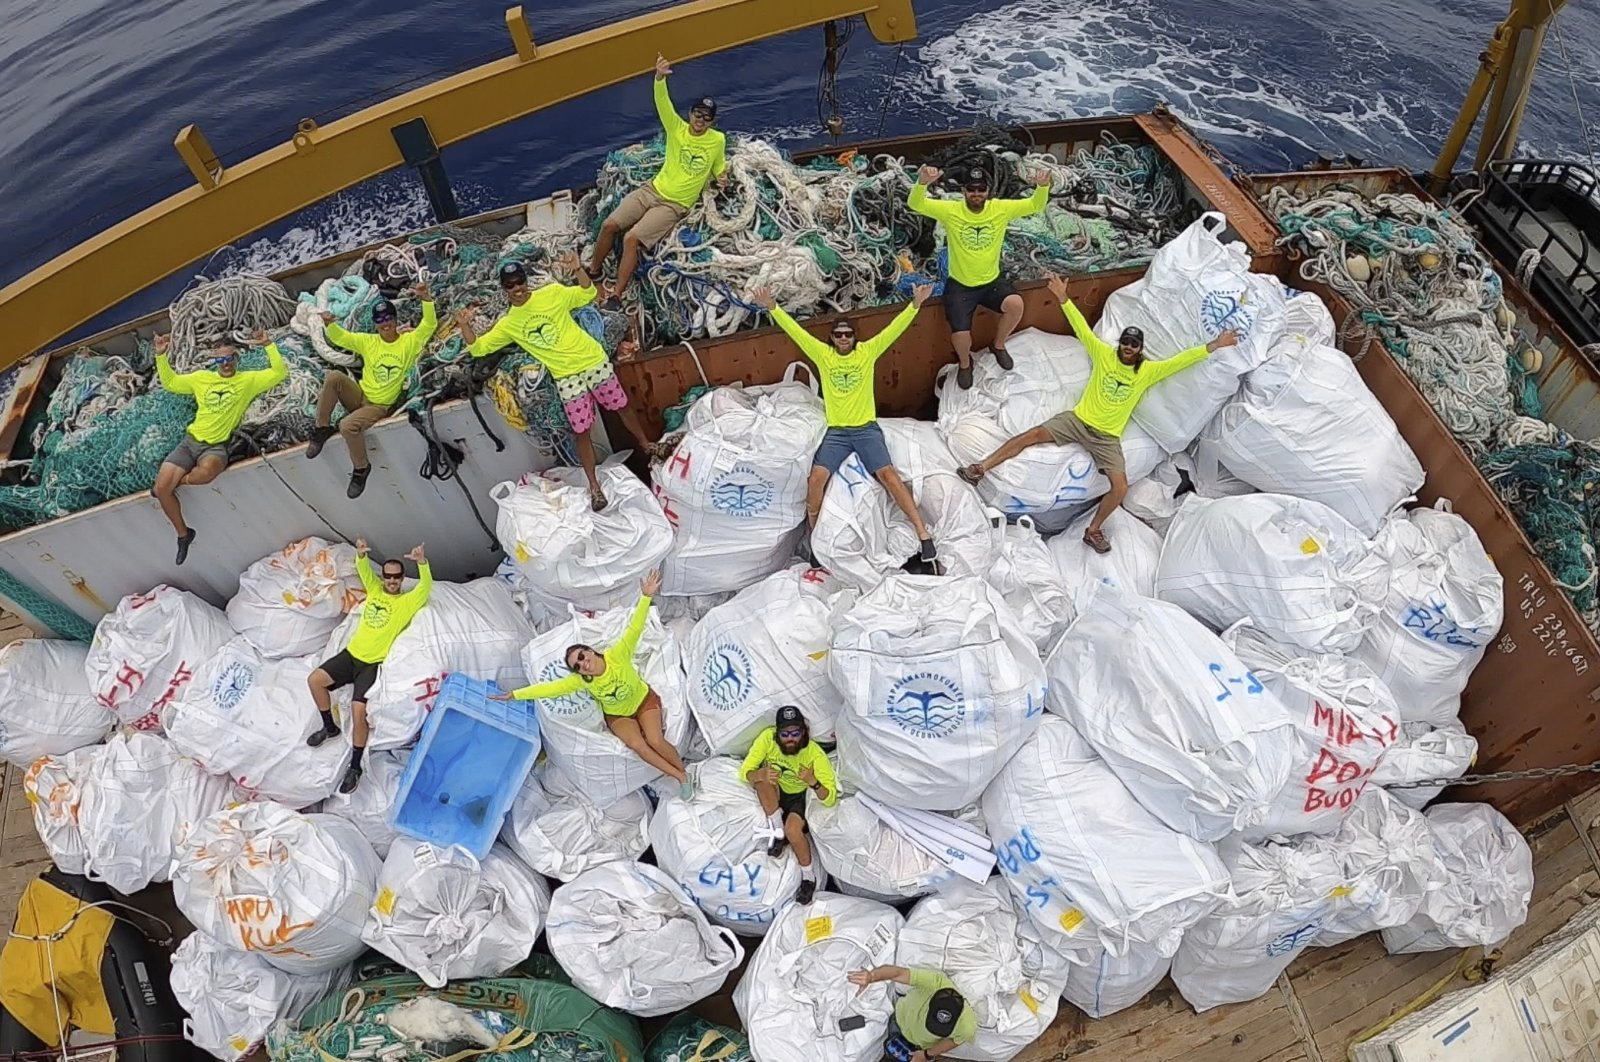 Workers with the Papahanaumokuakea Marine Debris Project pose on top of fishing nets and plastics collected from the the beaches of the Northwestern Hawaiian Islands, Hawaii, April 21, 2021. (Papahanaumokuakea Marine Debris Project via AP)